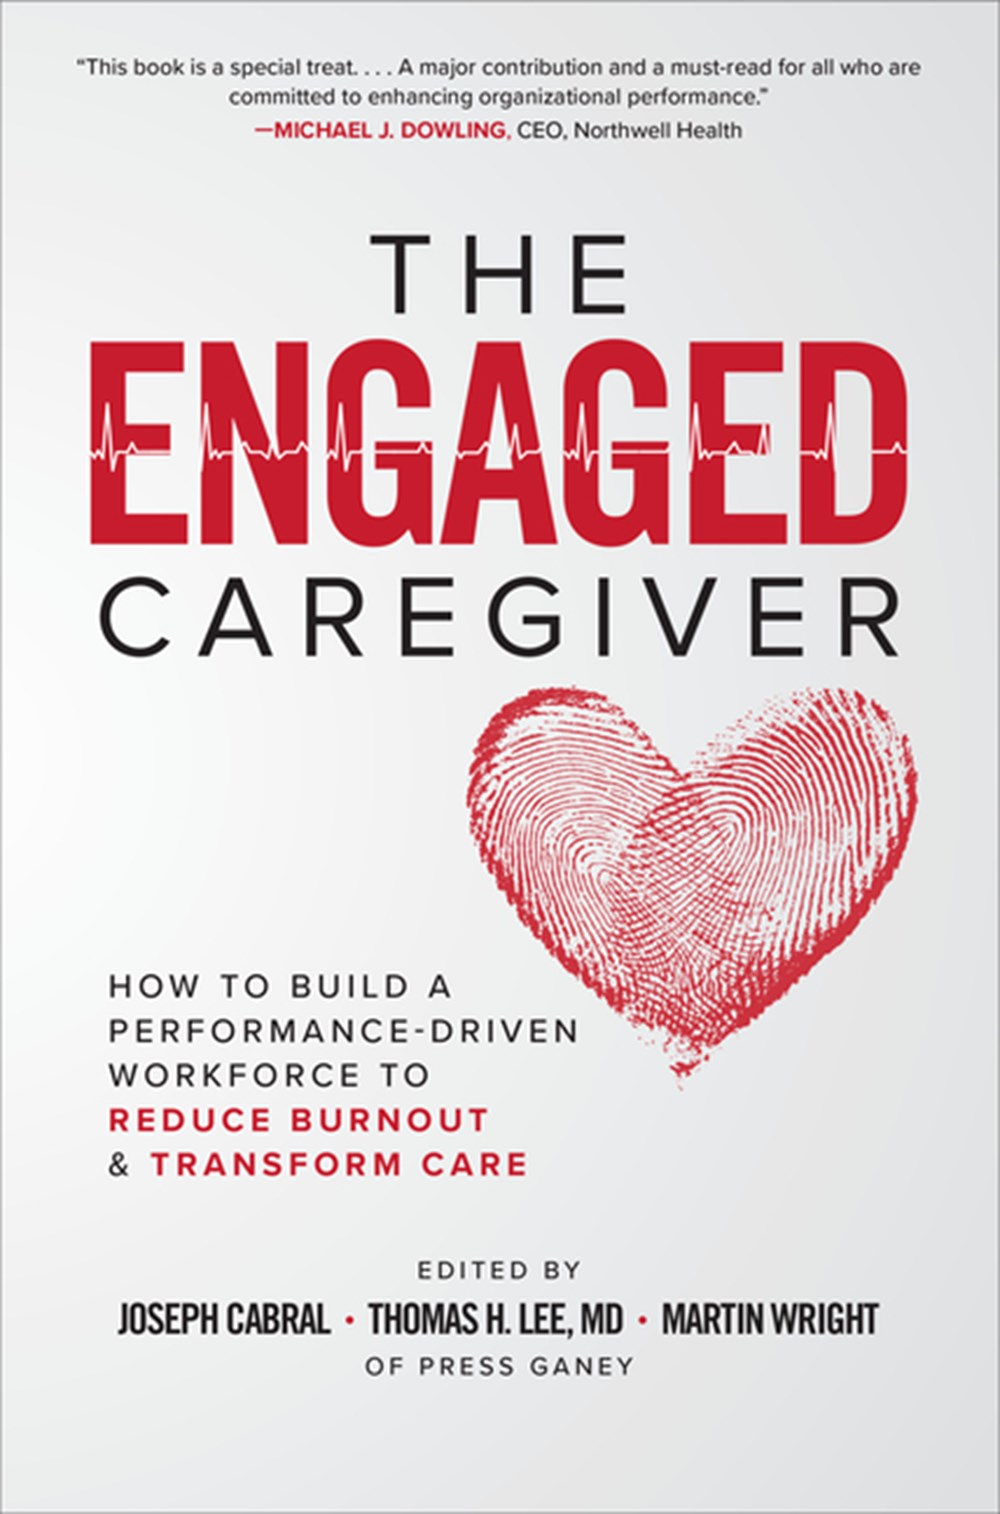 Engaged Caregiver How to Build a Performance-Driven Workforce to Reduce Burnout and Transform Care